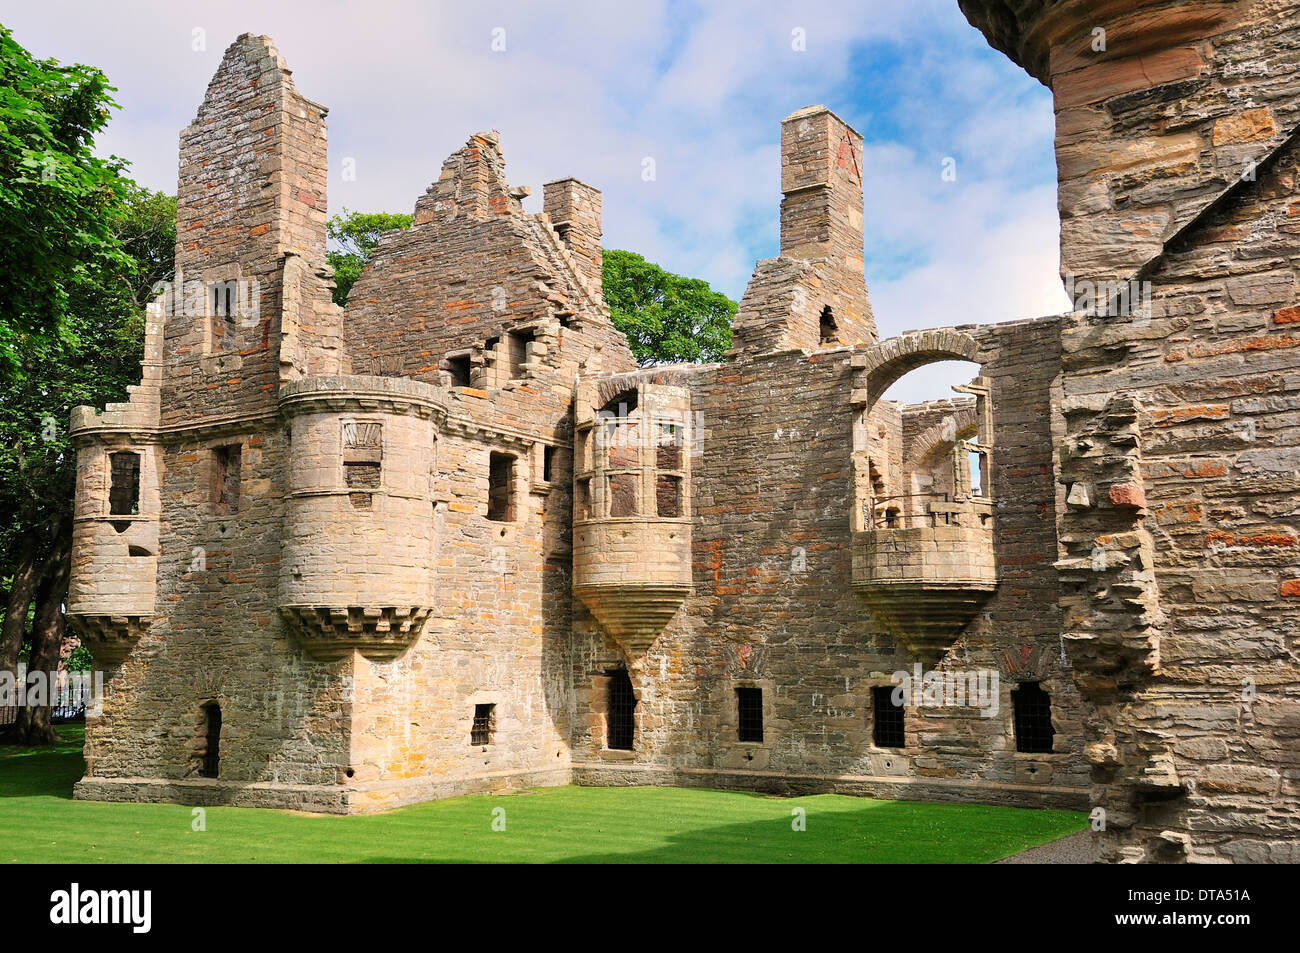 Ruins of the Bishop's Palace, Kirkwall, Mainland, Orkney, Scotland, United Kingdom - Stock Image